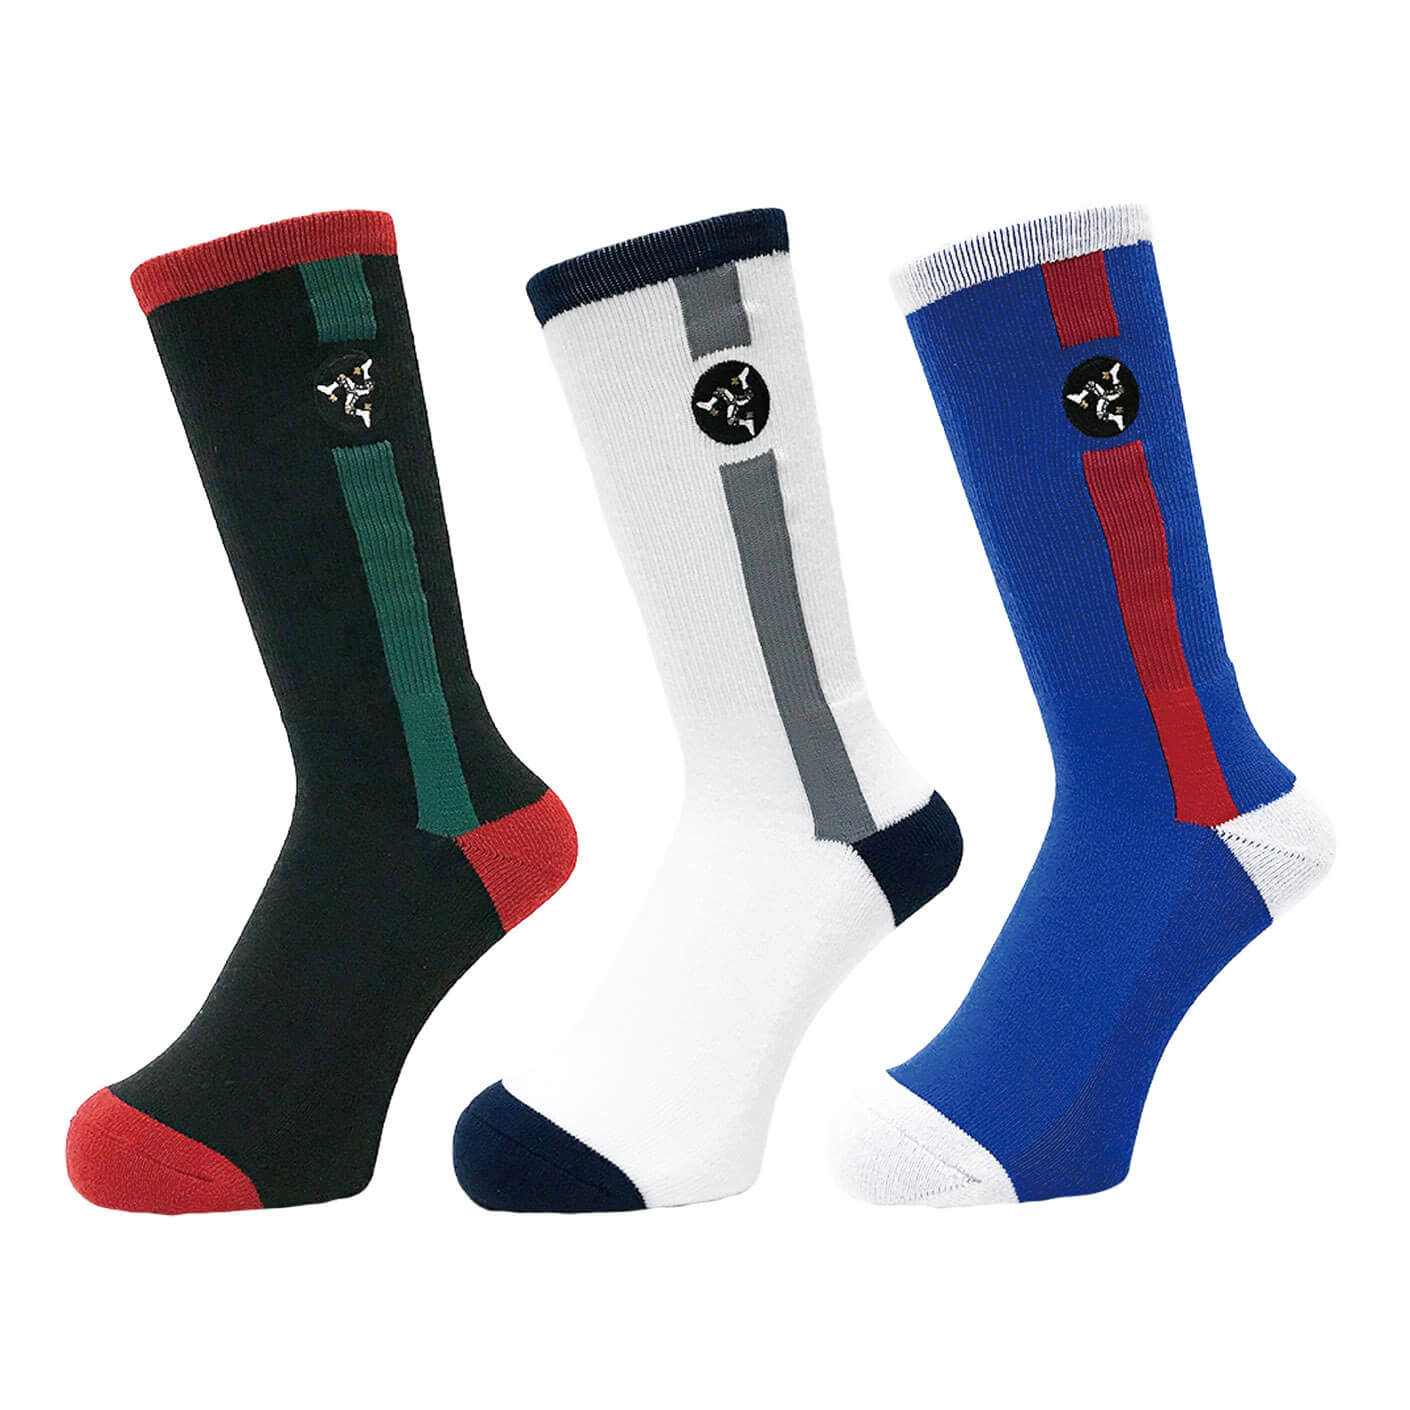 32/1 POZESSION SOCKS